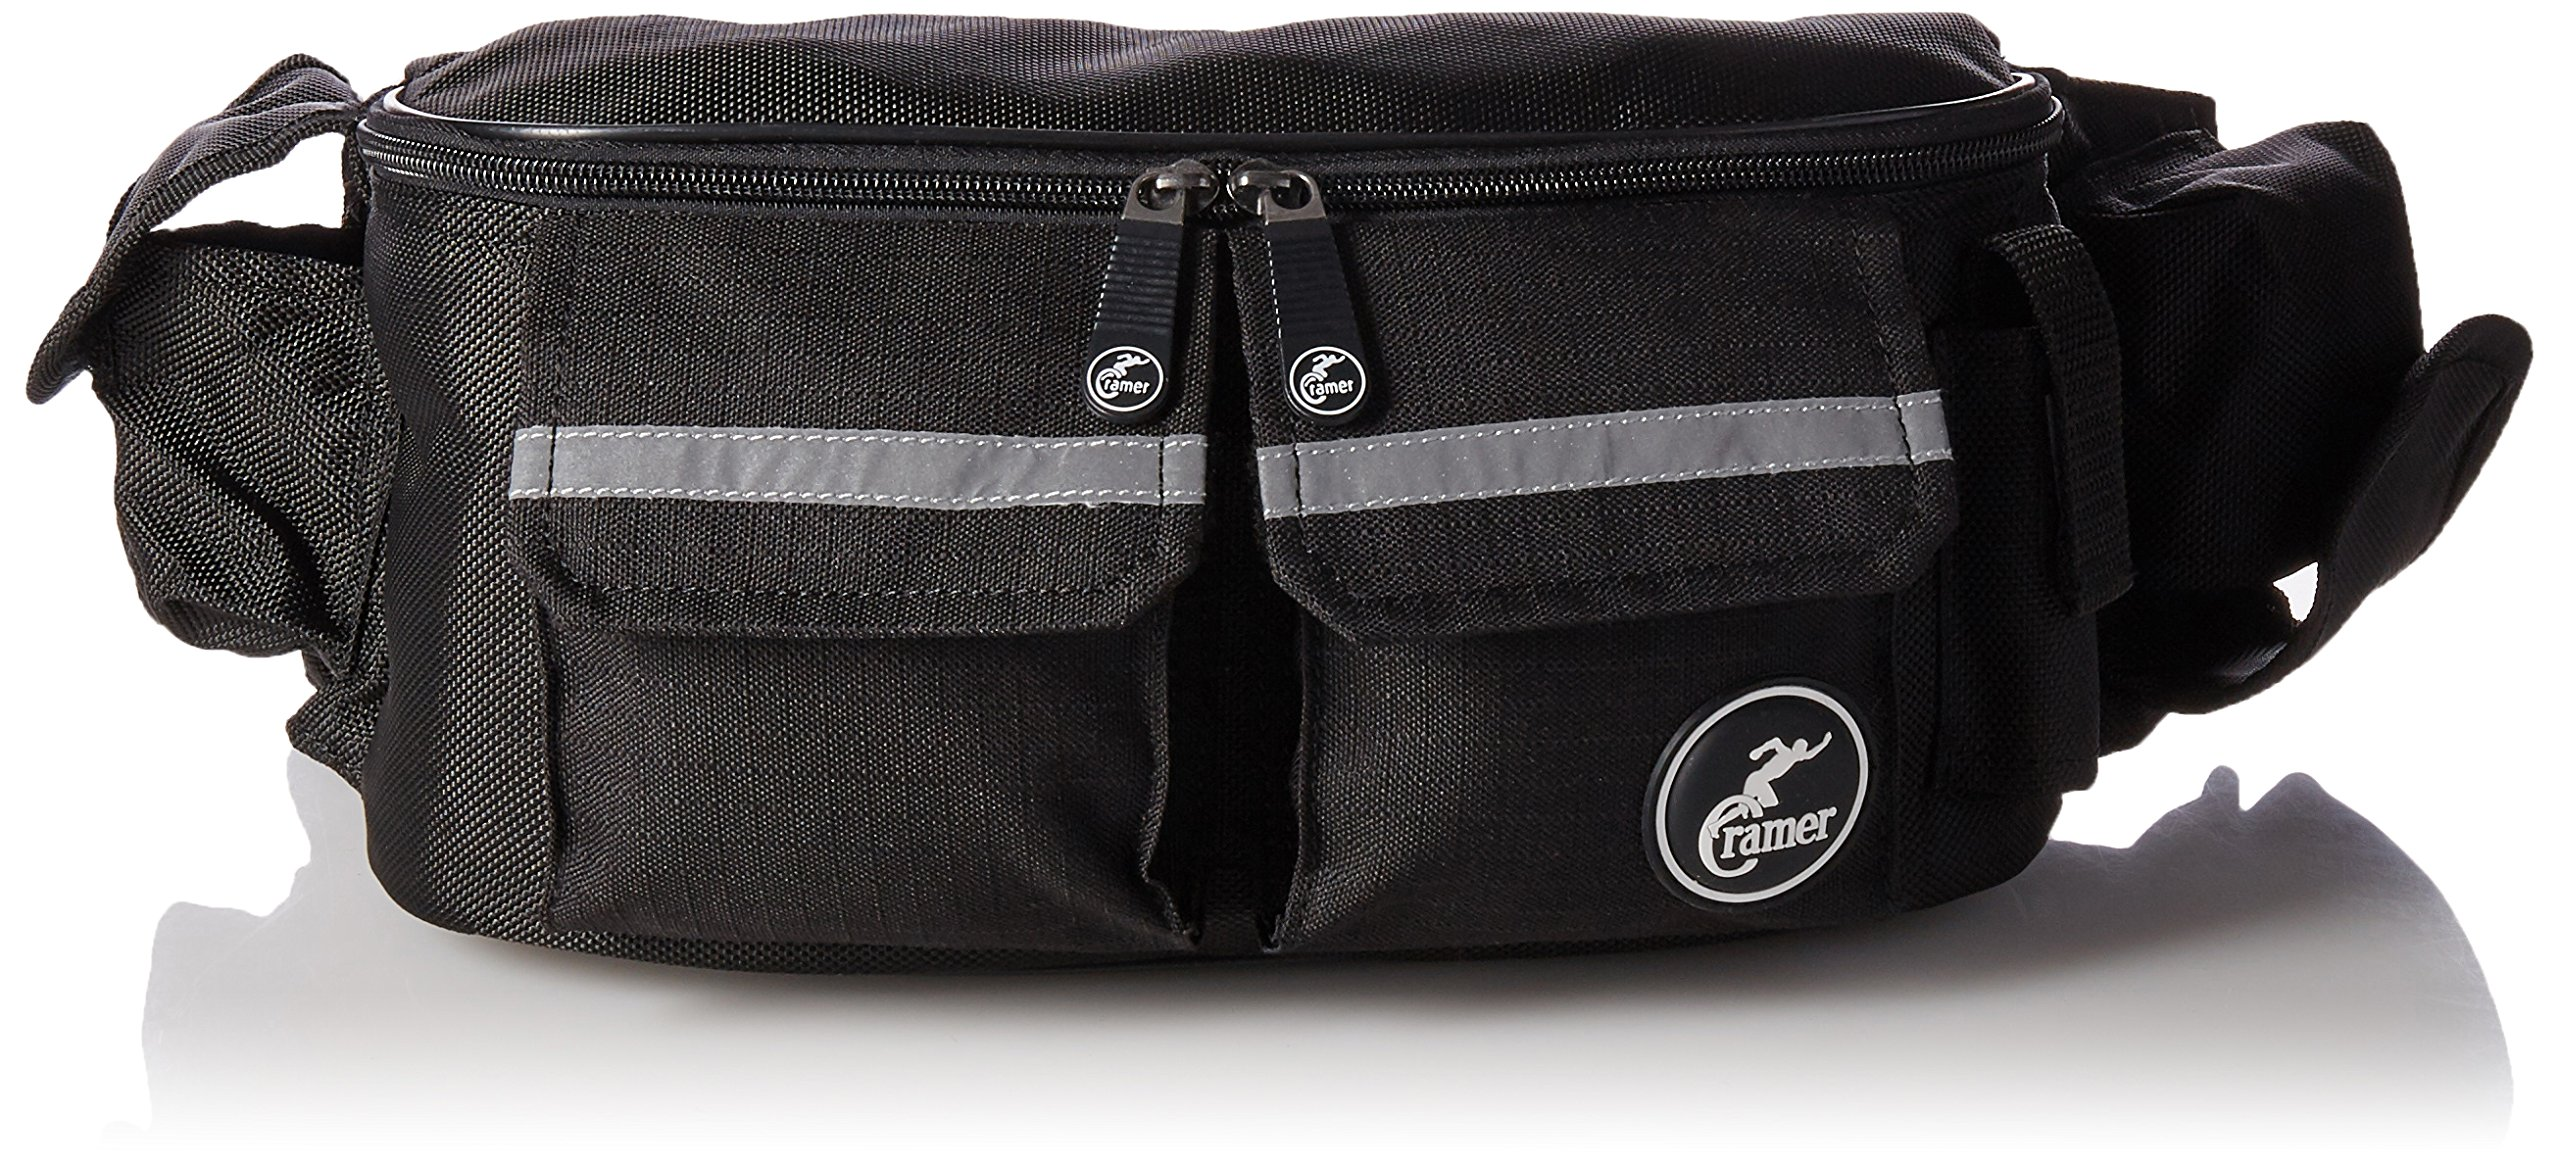 Cramer Deluxe Fanny Pack for Athletic Trainers, Complete Athletic Training Kit Waist Bag With Quick Access Pockets, Lightweight Option Carries AT Essential Supplies, Including Tape and Scissors, Empty